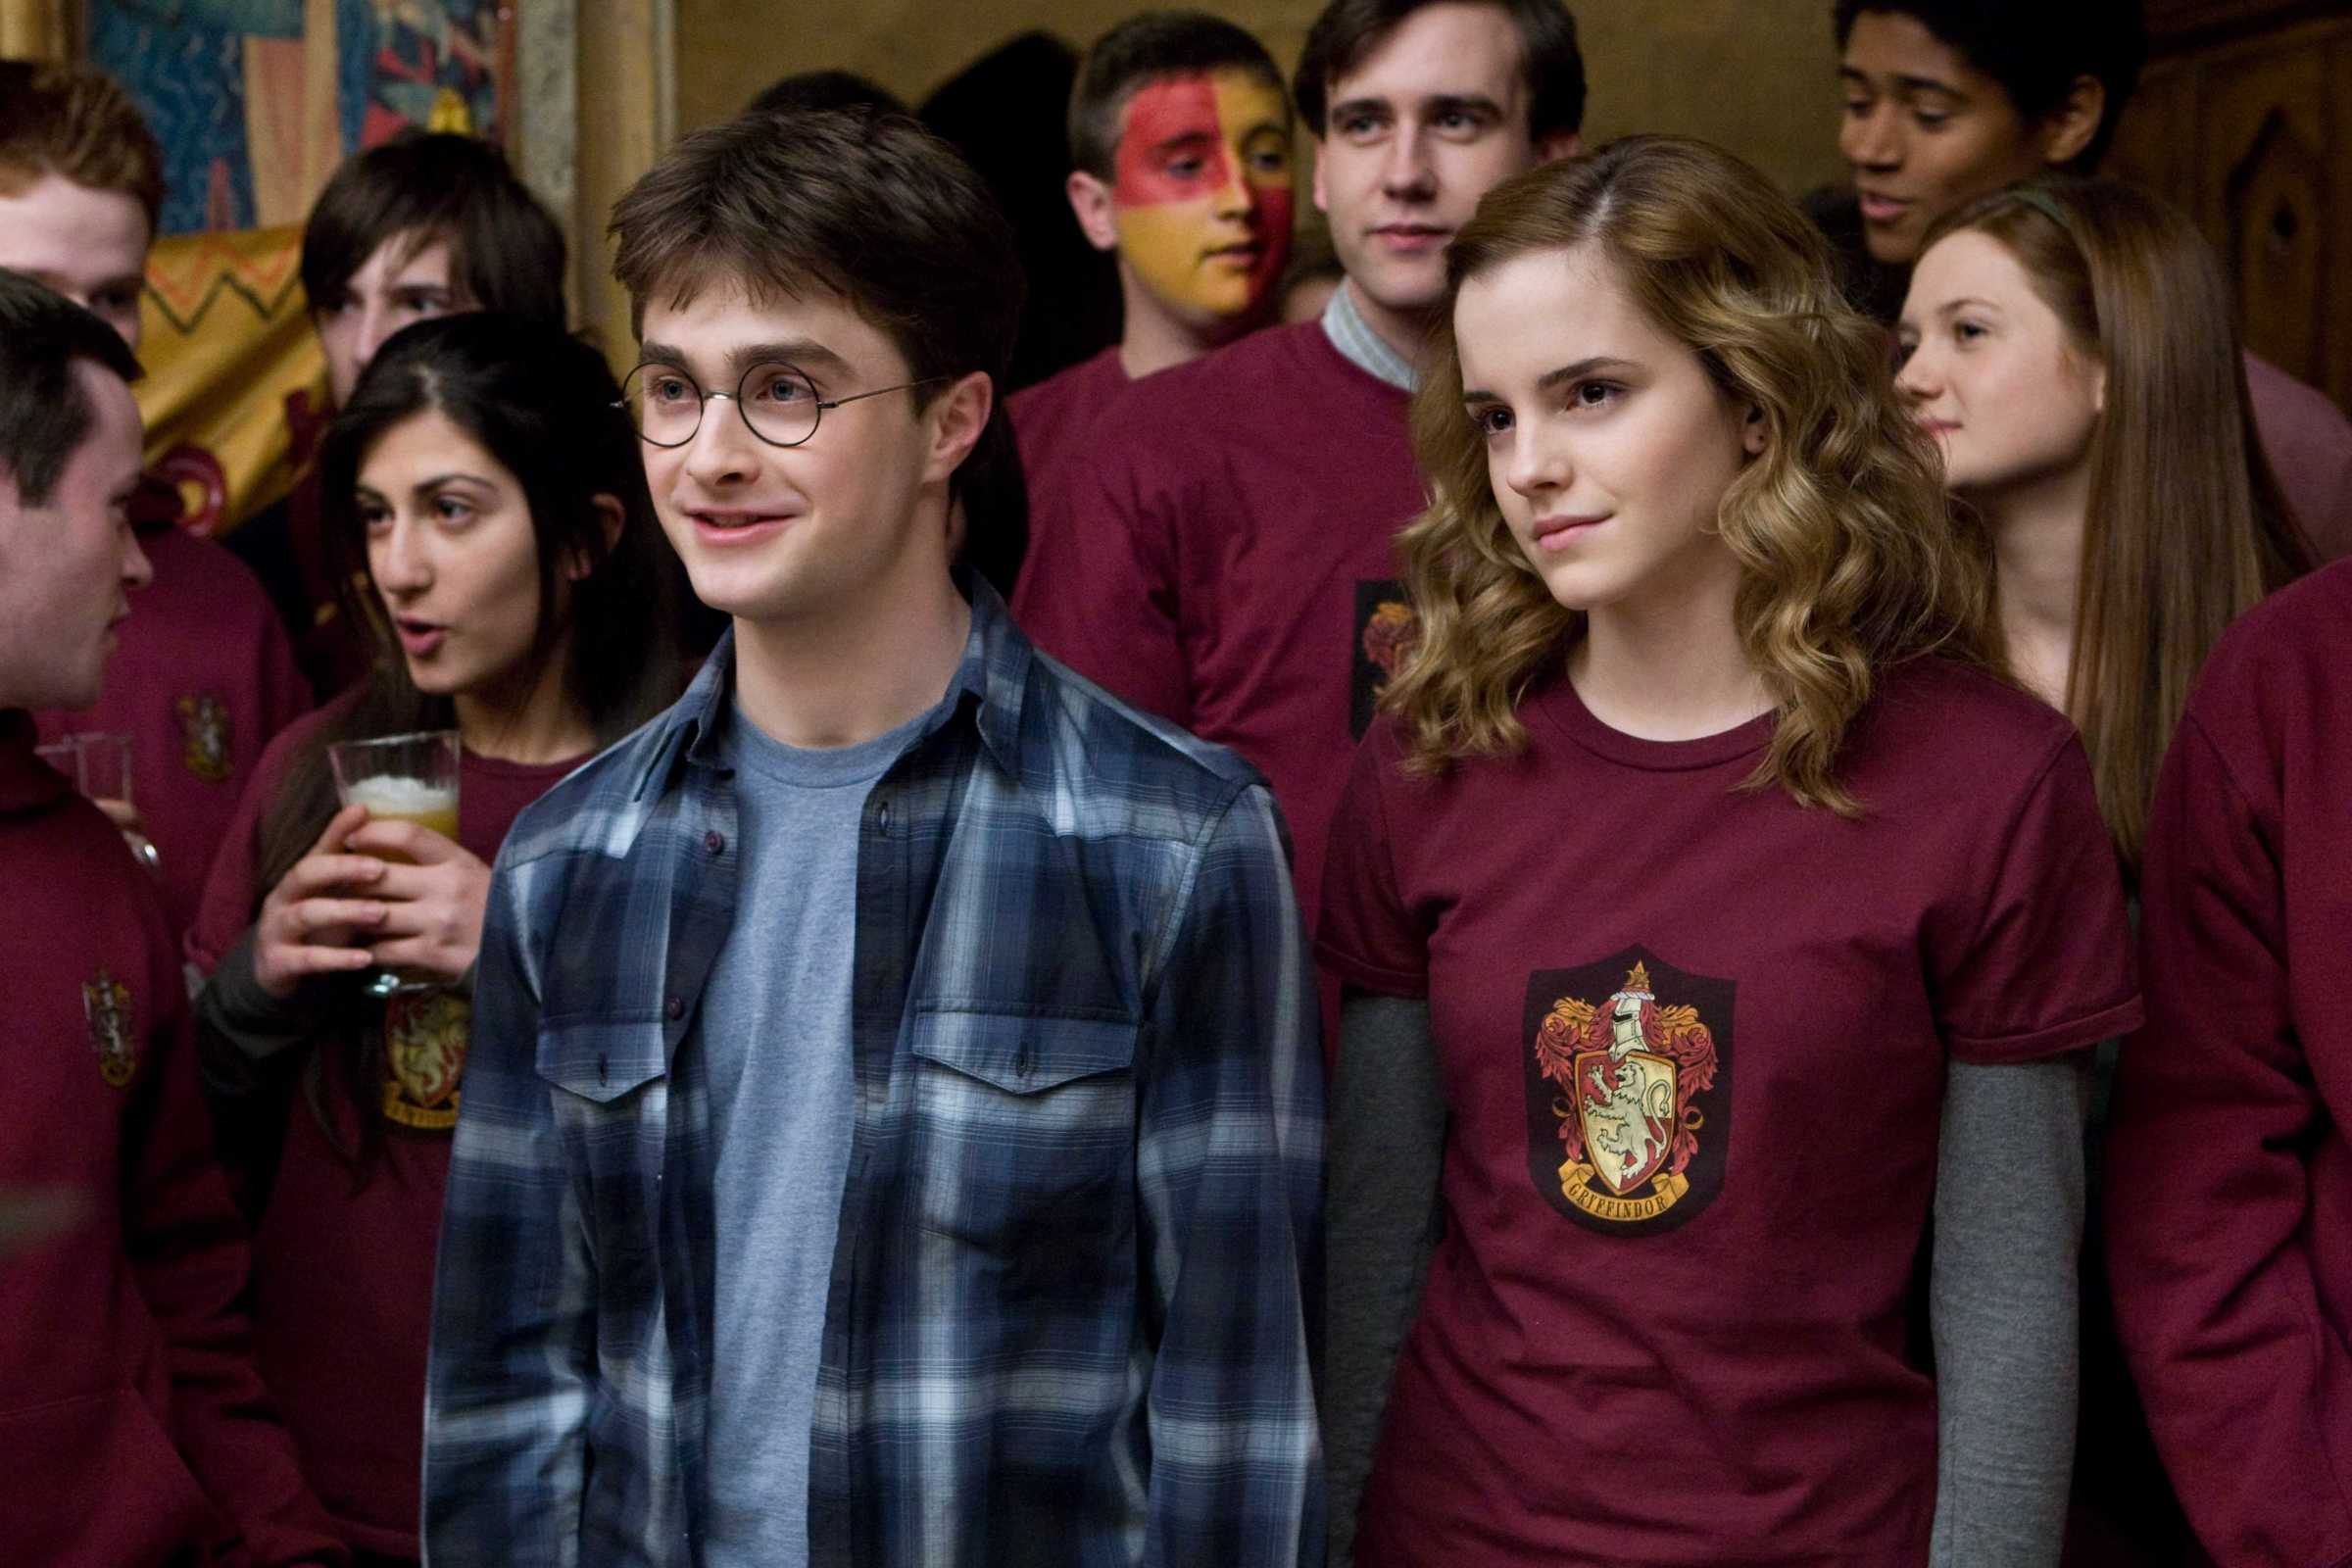 HP6D-08842r                                   (L-r) DANIEL RADCLIFFE as Harry Potter, MATTHEW LEWIS as Neville Longbottom, EMMA WATSON as Hermione Granger and BONNIE WRIGHT as Ginny Weasley in Warner Bros. PicturesÕ fantasy adventure ÒHarry Potter and the Half-Blood Prince.